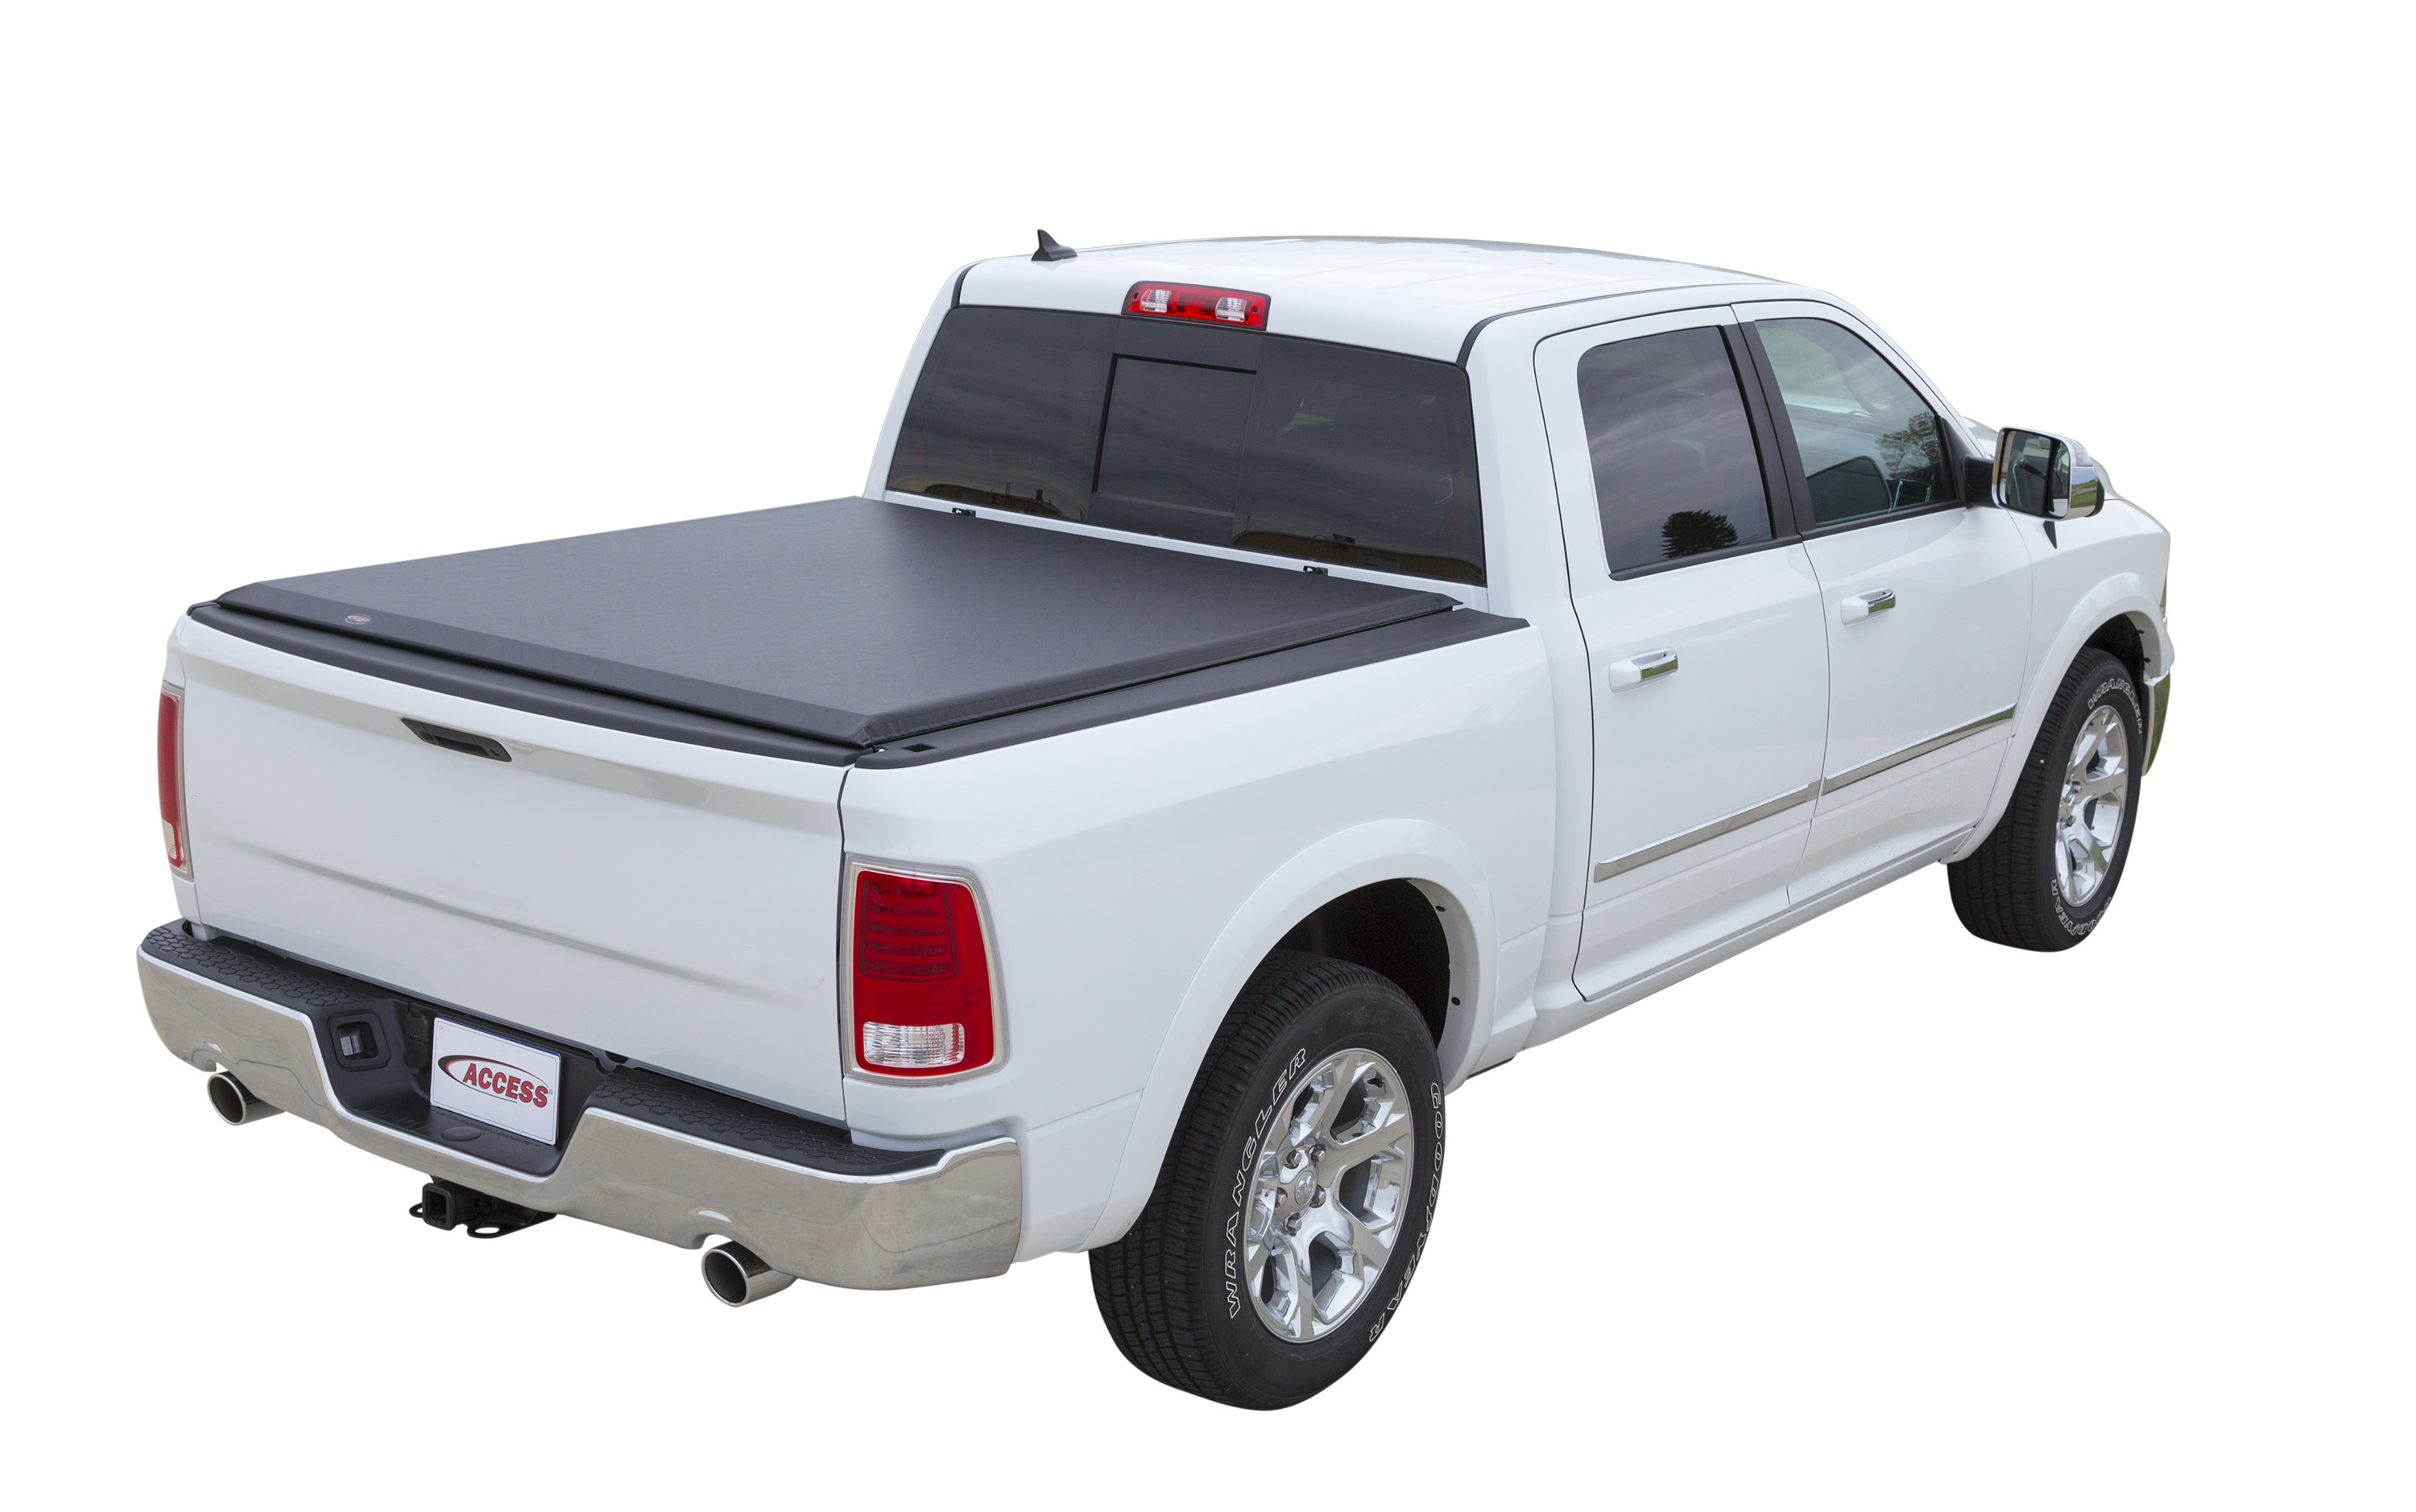 32319 Aci Agricover Access Cover Tonneau Cover Soft Roll Up Velcro